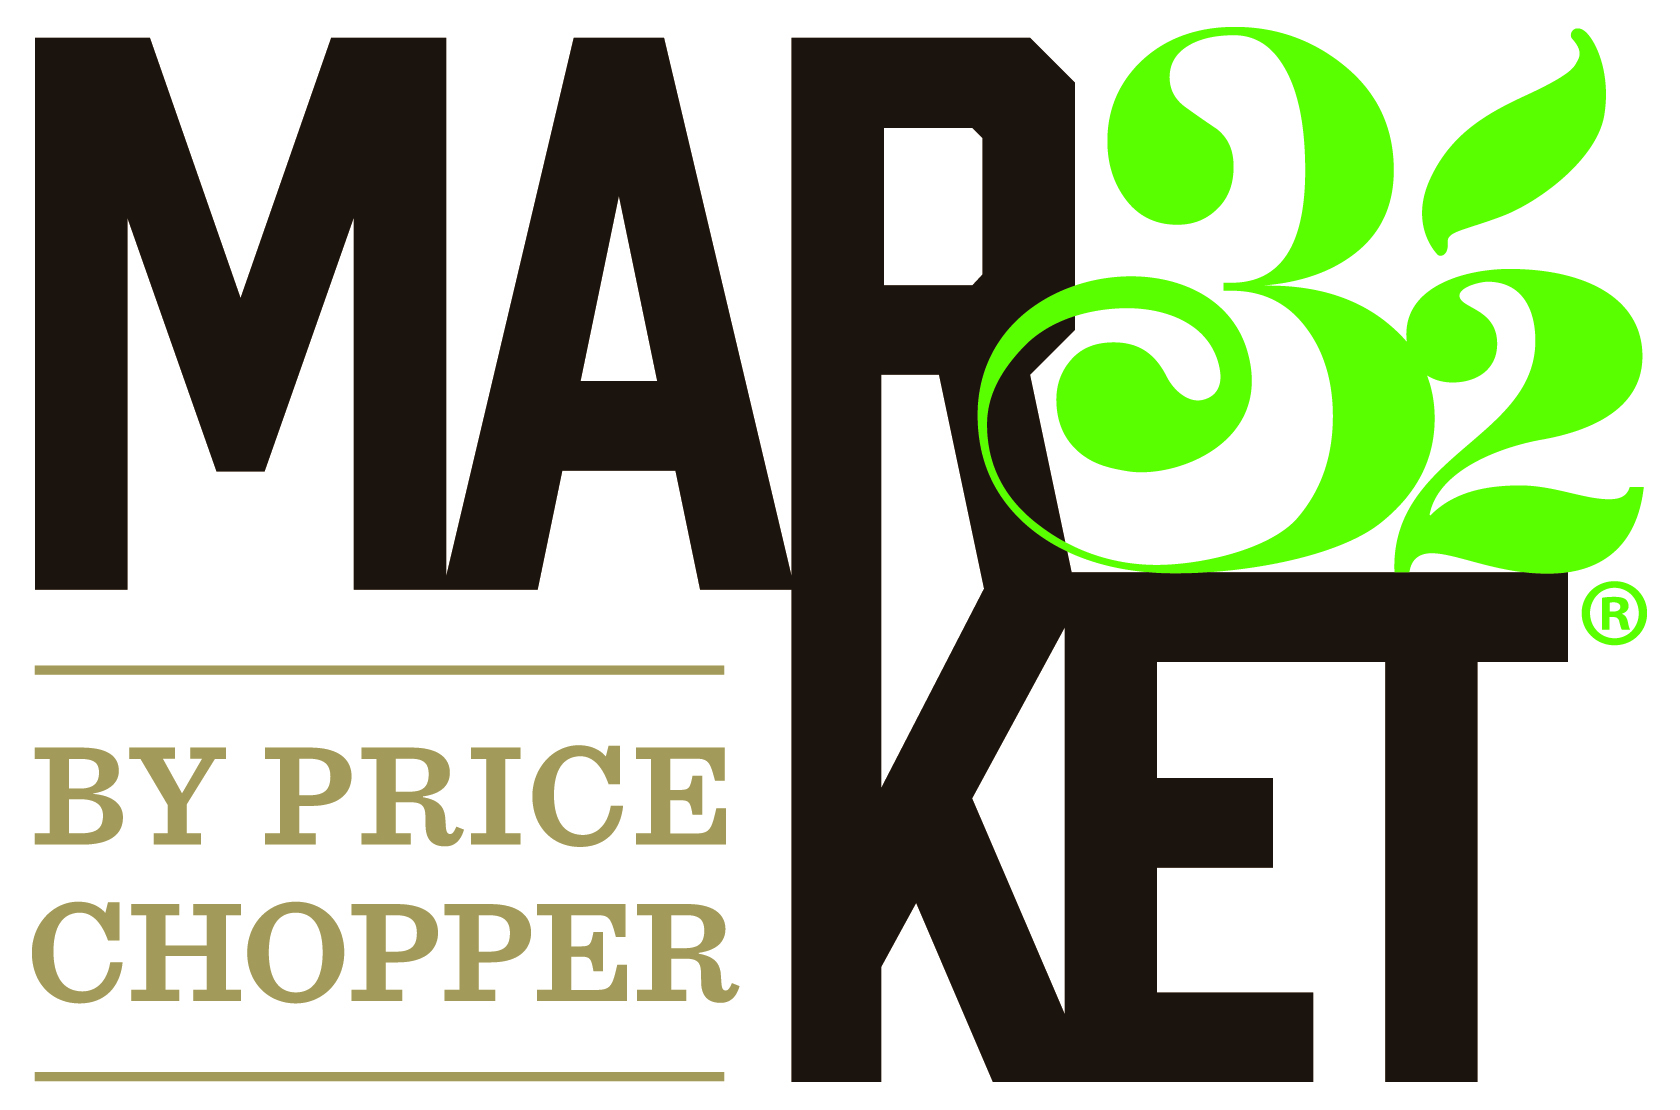 Market 32 by Price Chopper Logo.jpg